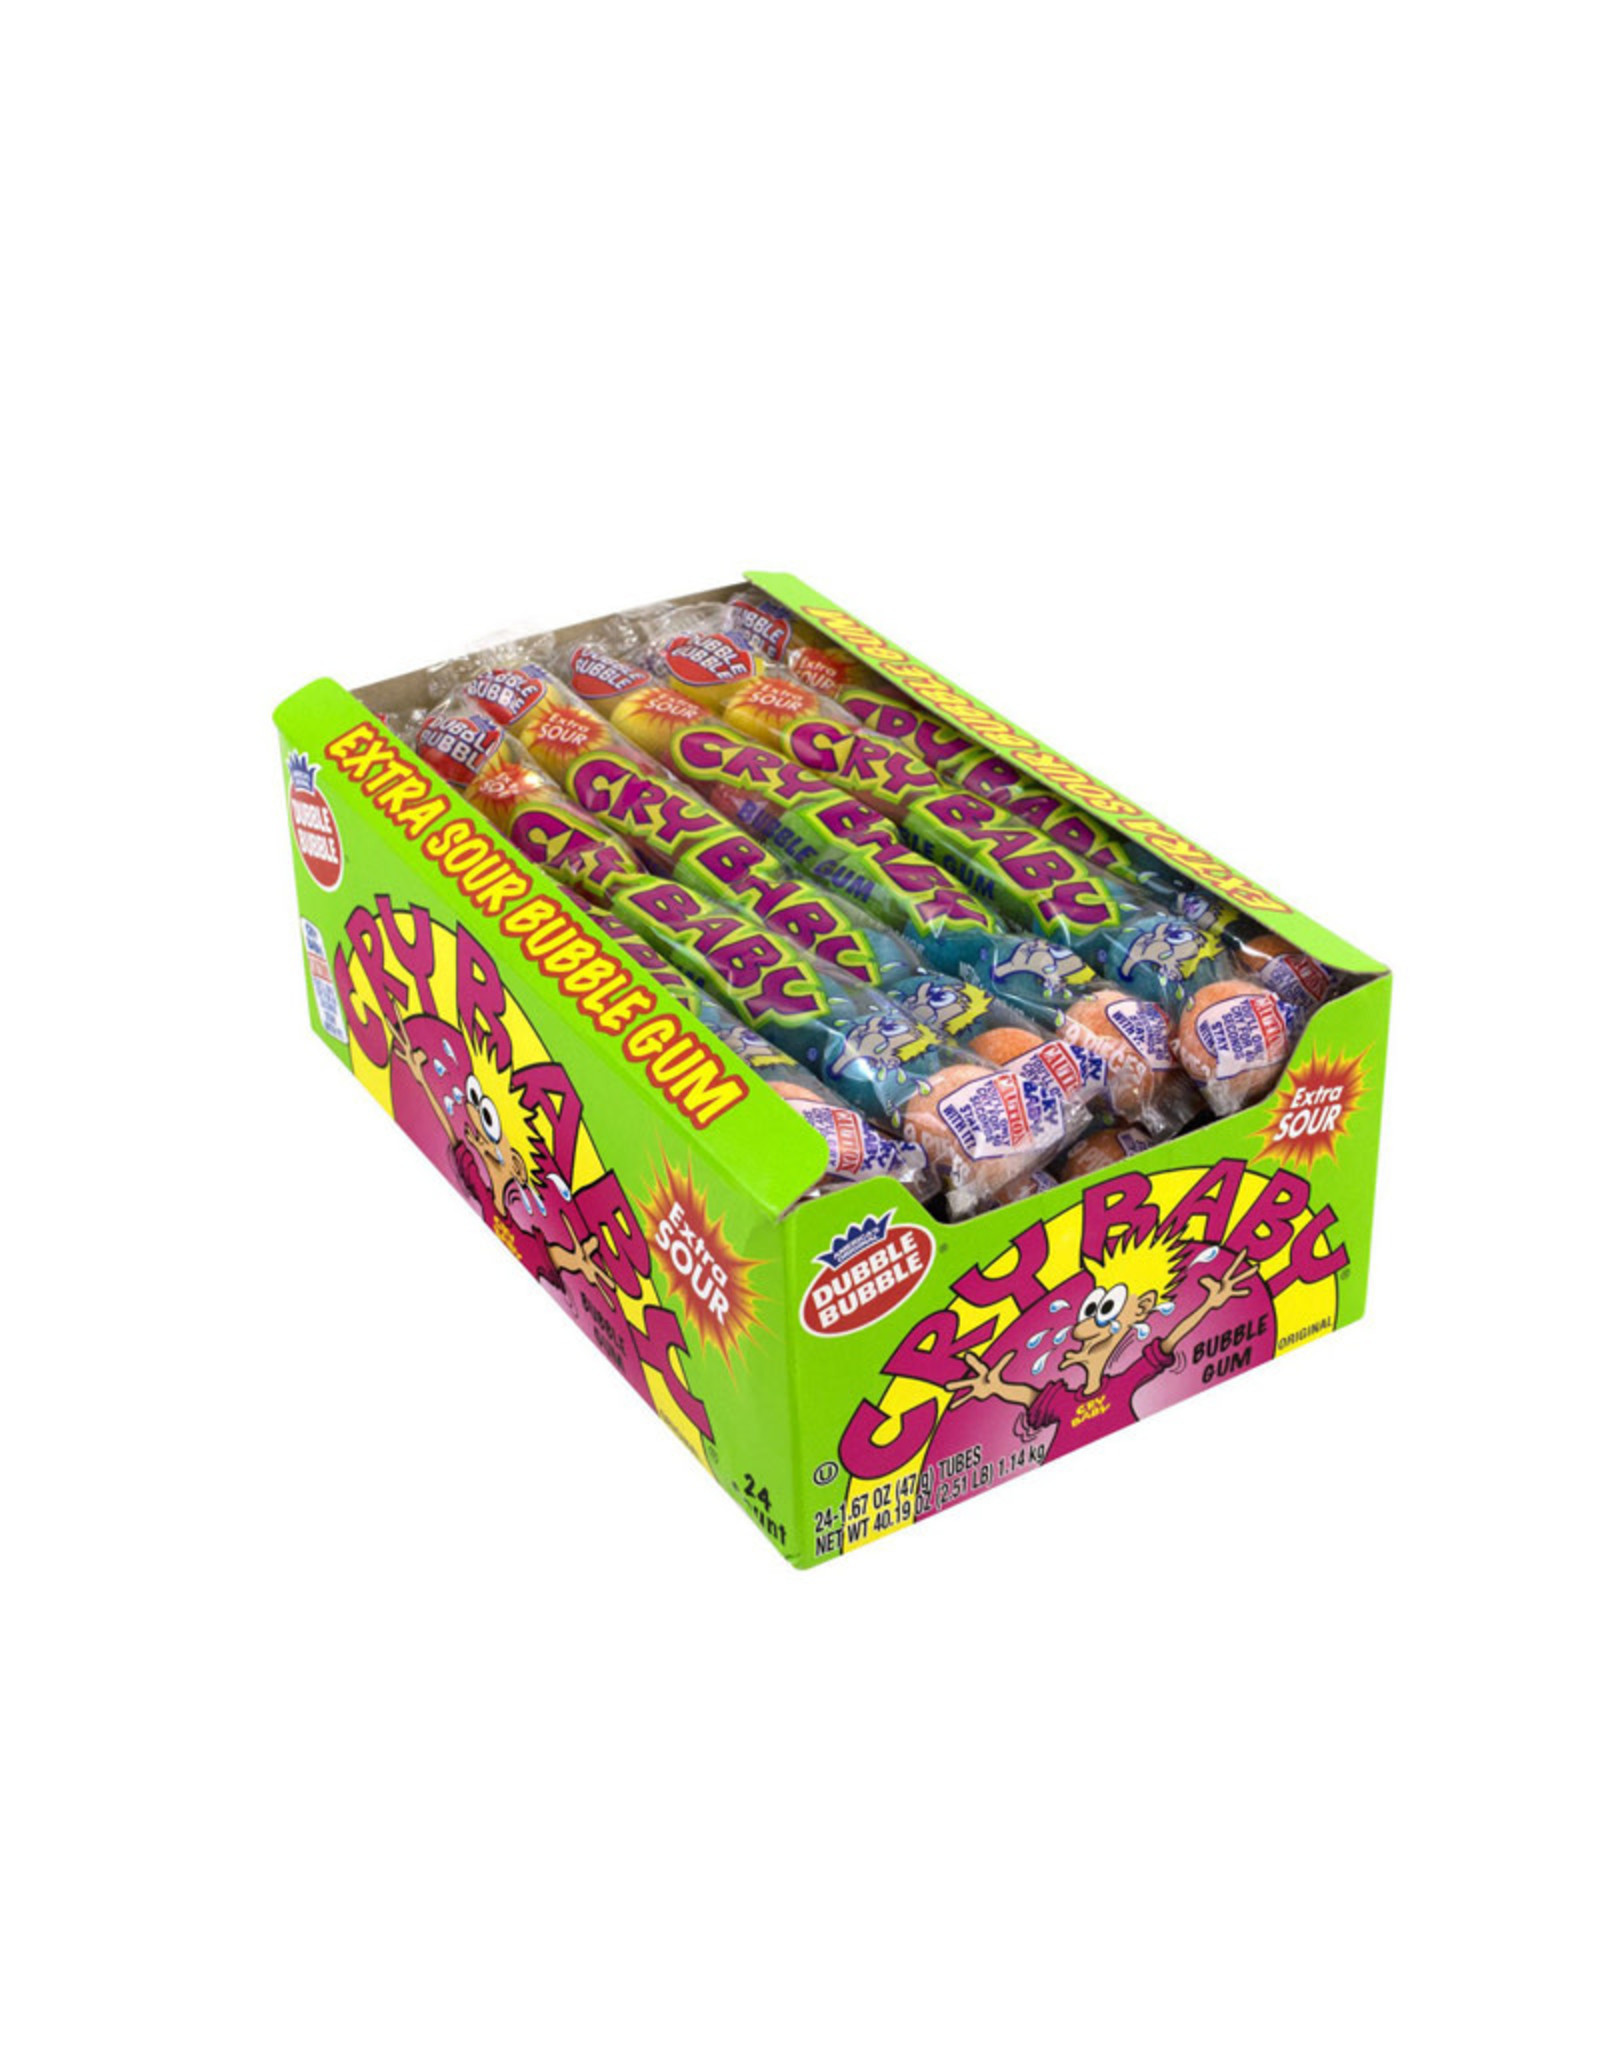 Hubble Bubble ( Cry Baby ) Extra Sour Gum